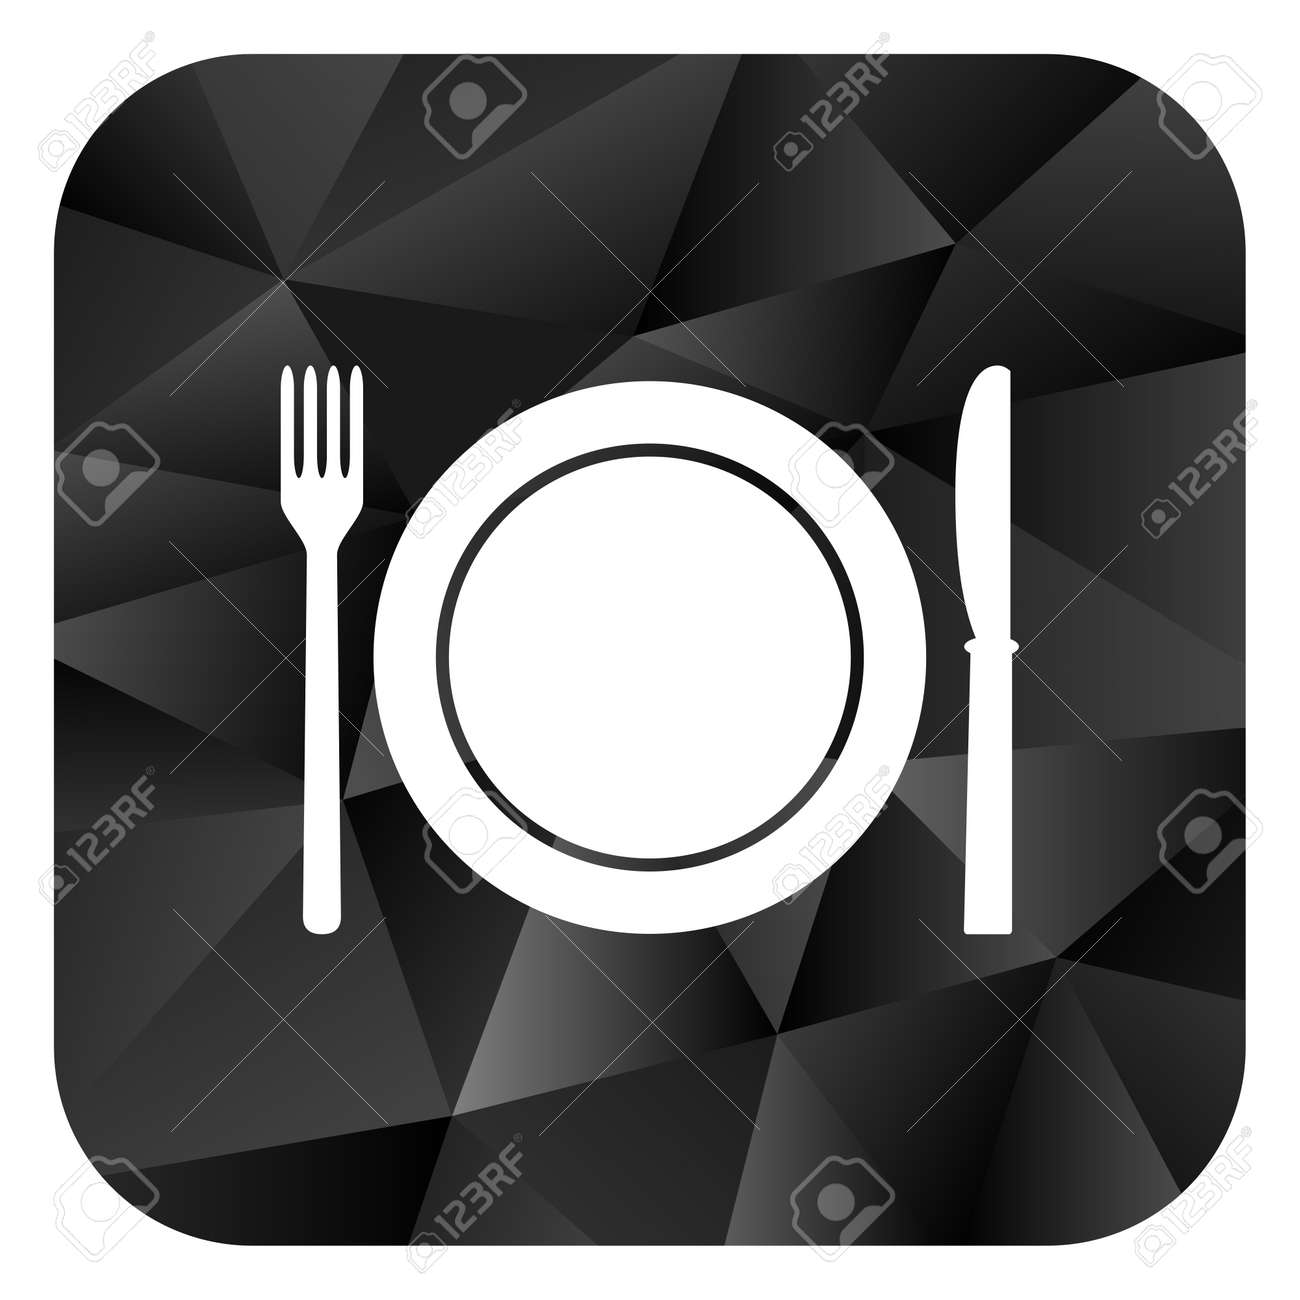 Restaurant Black Color Web Modern Brillant Design Square Internet Stock Photo Picture And Royalty Free Image Image 75892243